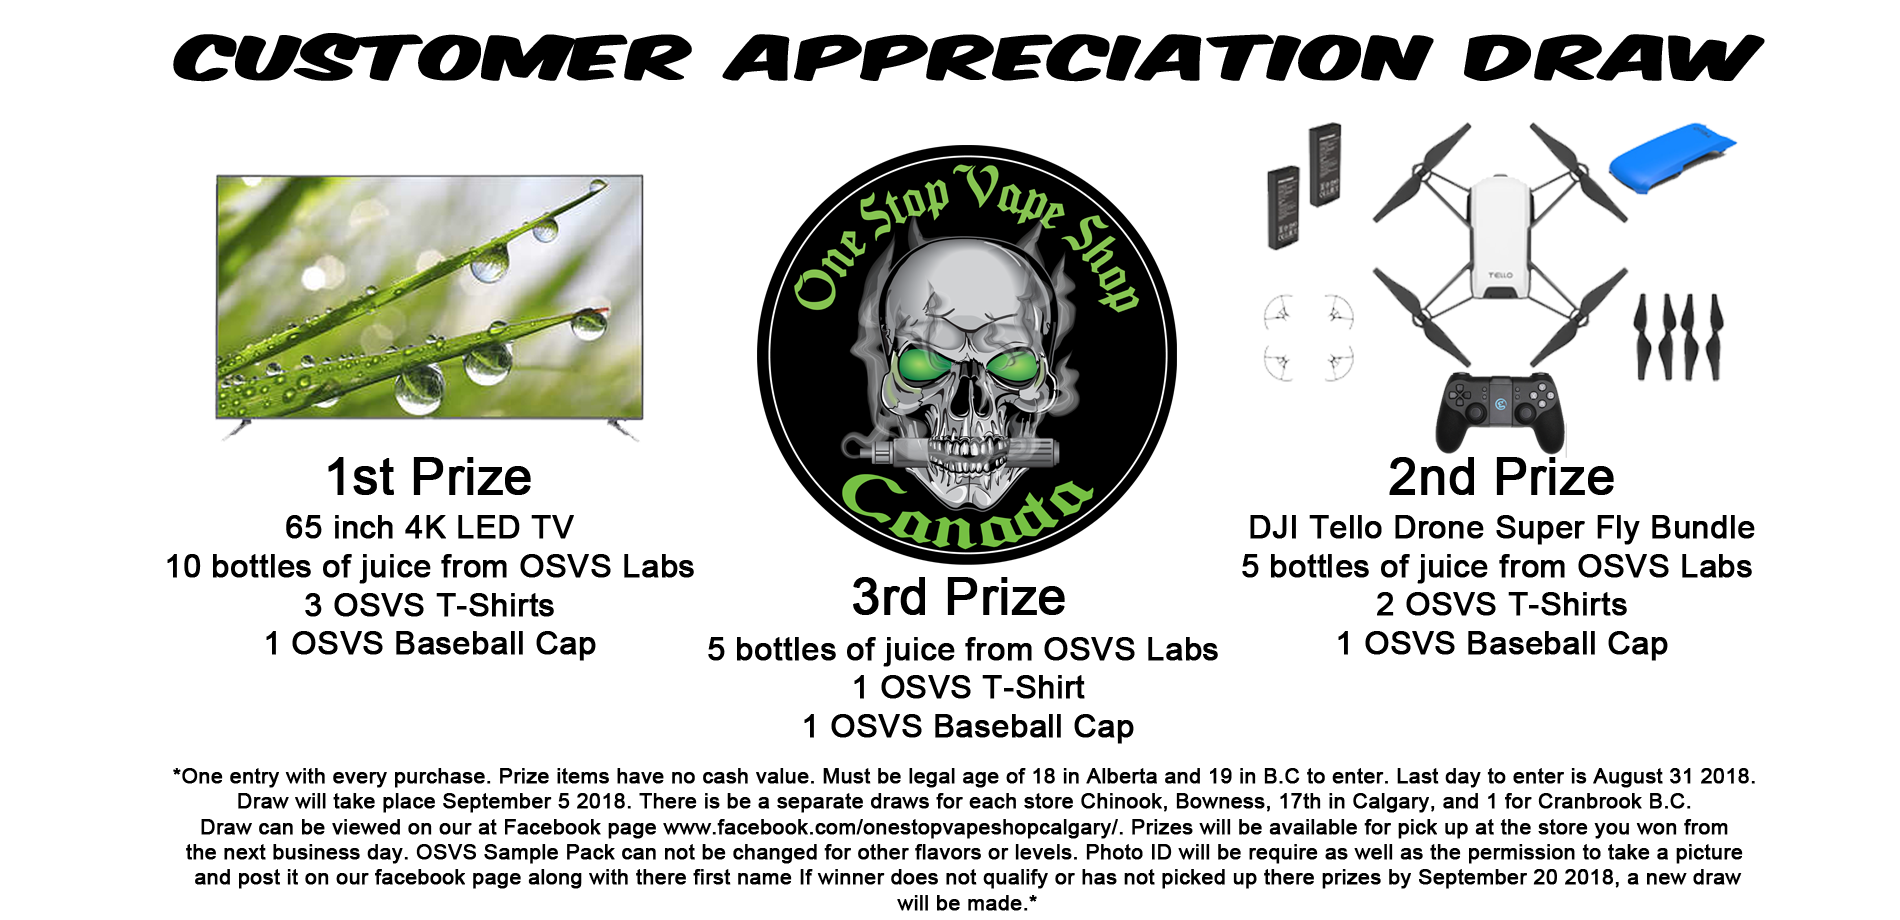 Customer Appreciation Draw